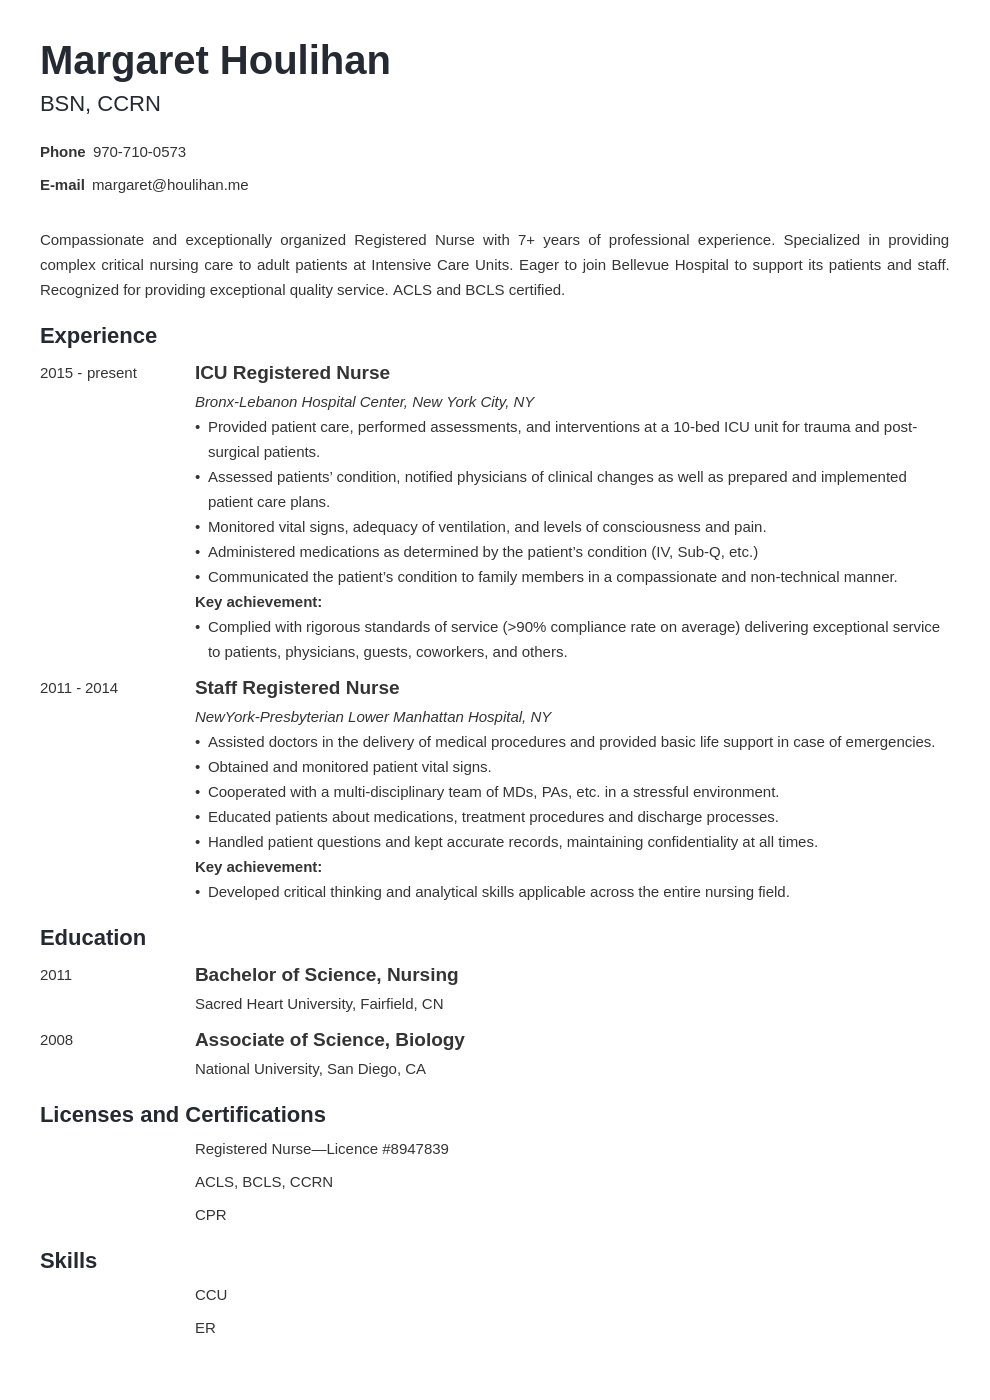 icu nurse resume example template minimo